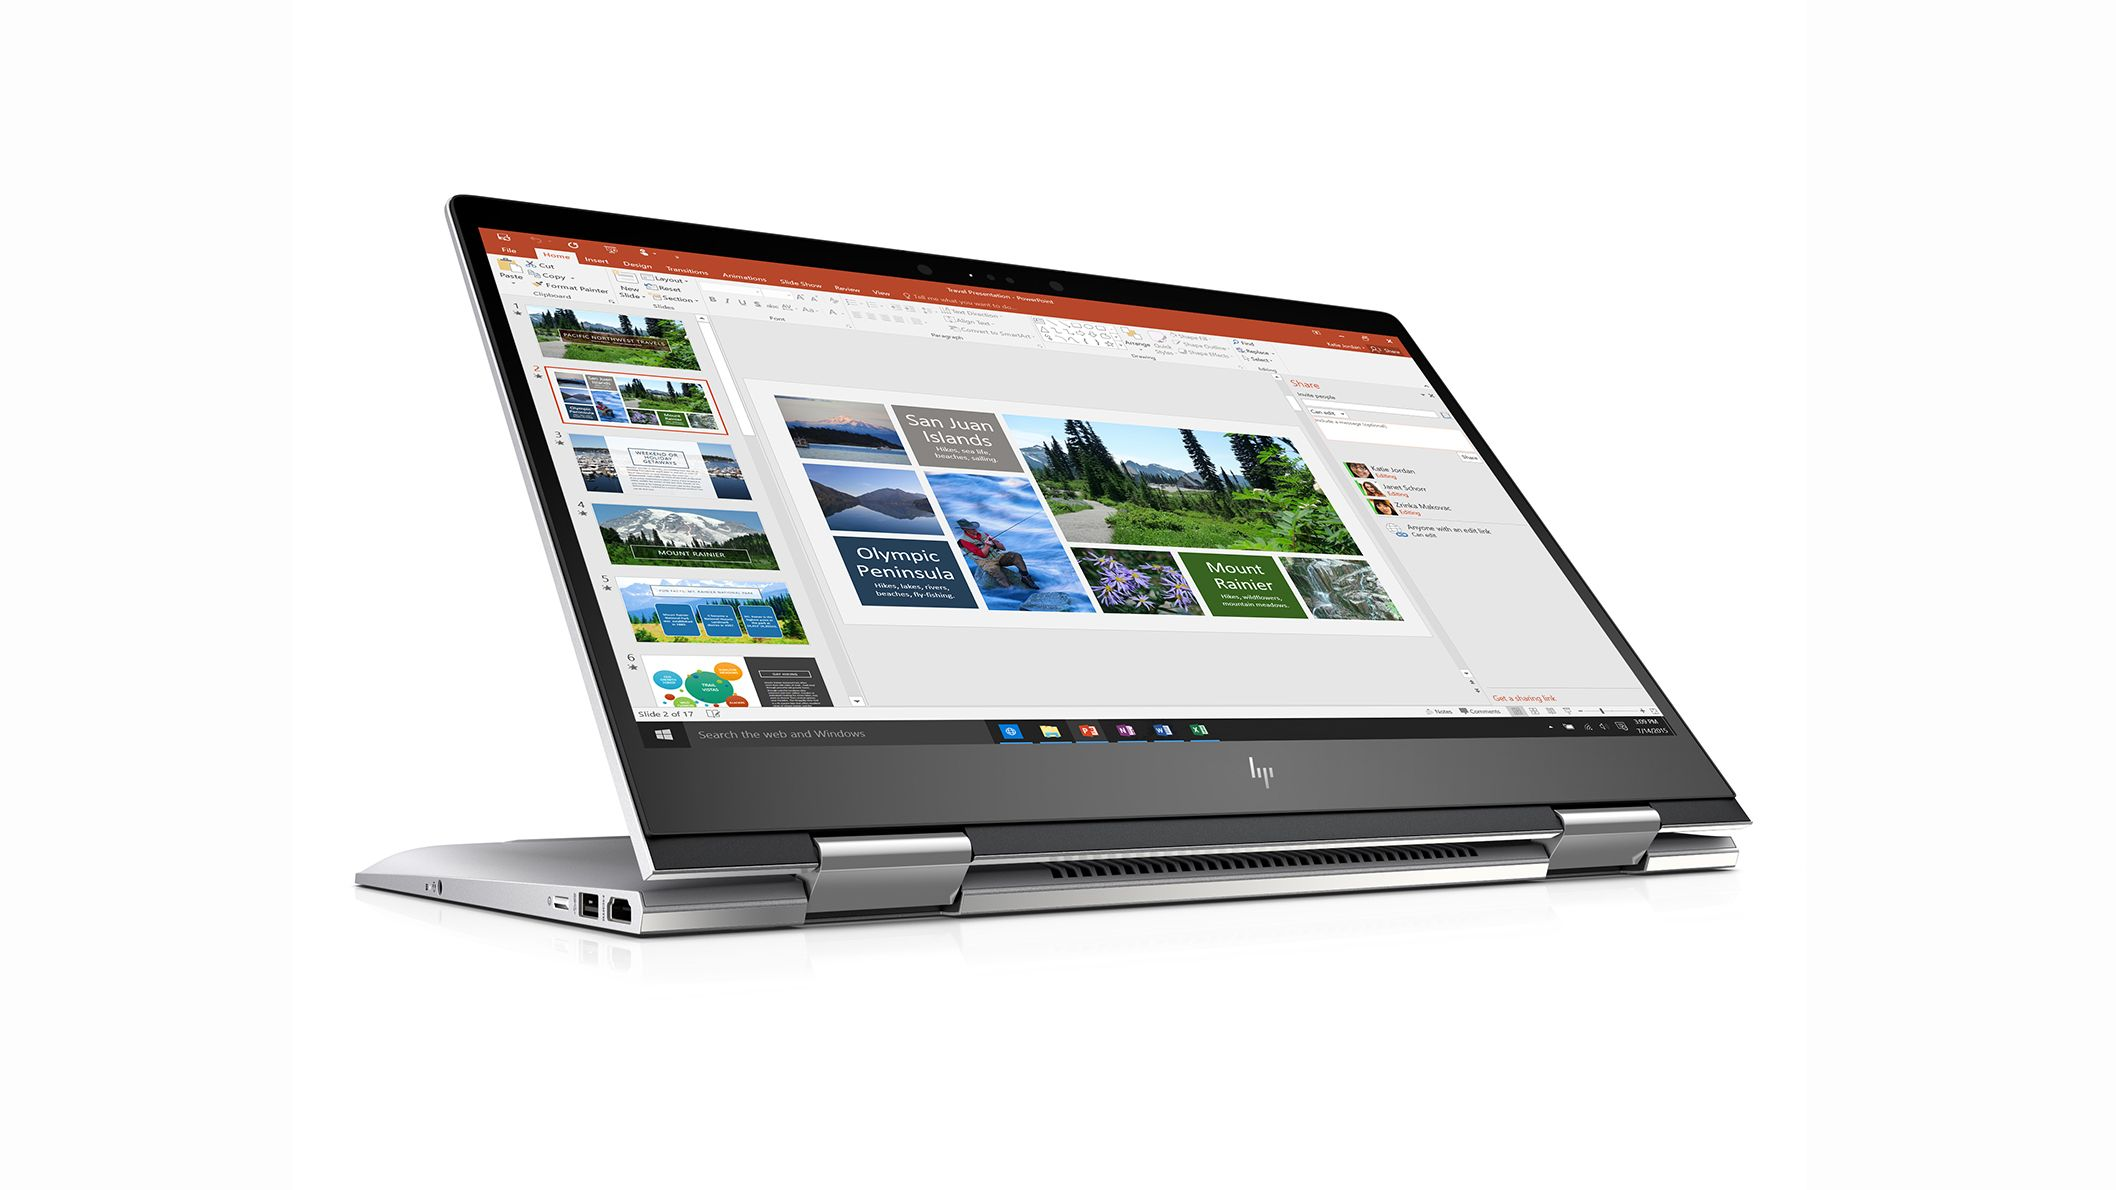 Hp Envy X360 Convertible Laptop 899 Tech For Your Lap Lenovo V110 15isk With Intel Core I3 6100u